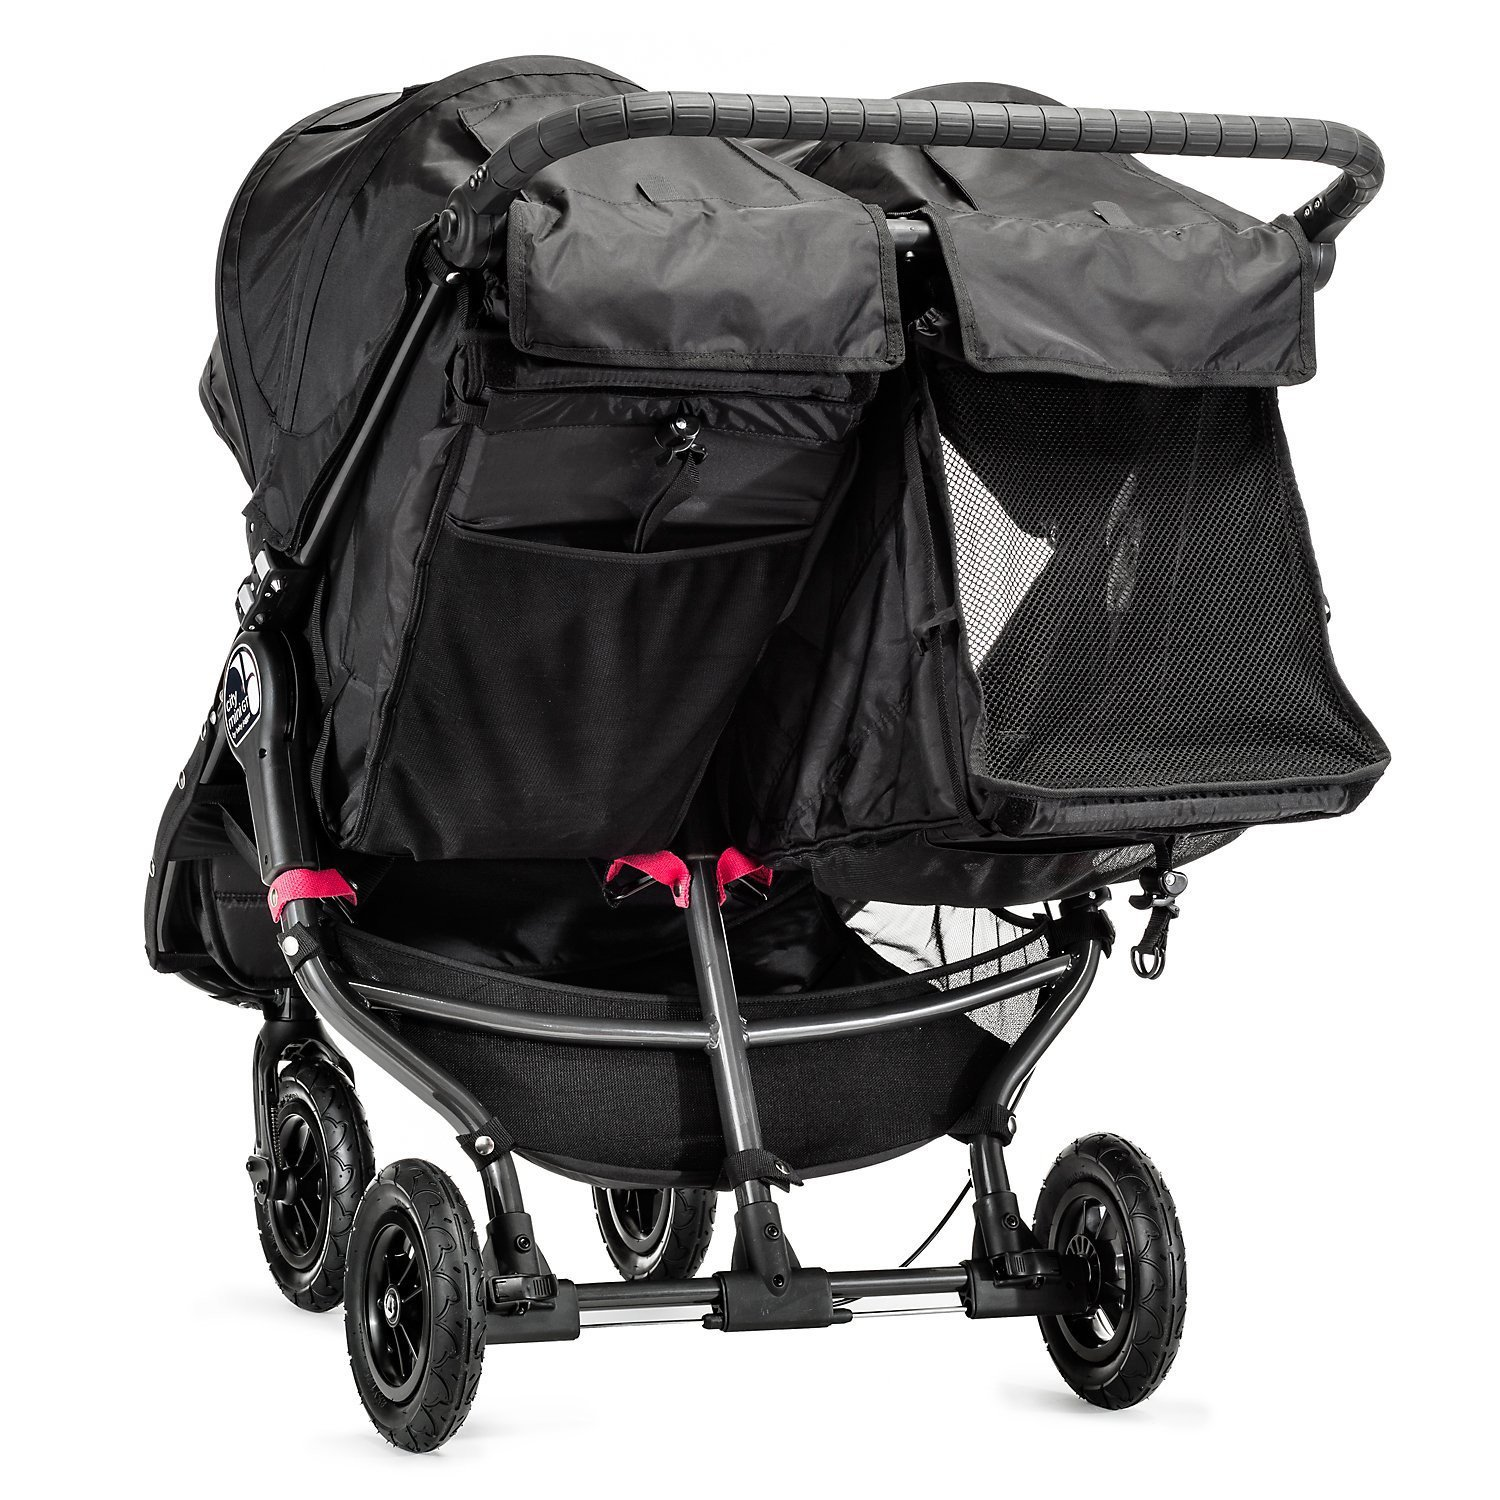 6 Best Strollers For Tall Parents (Oct. 2019) - Reviews ...